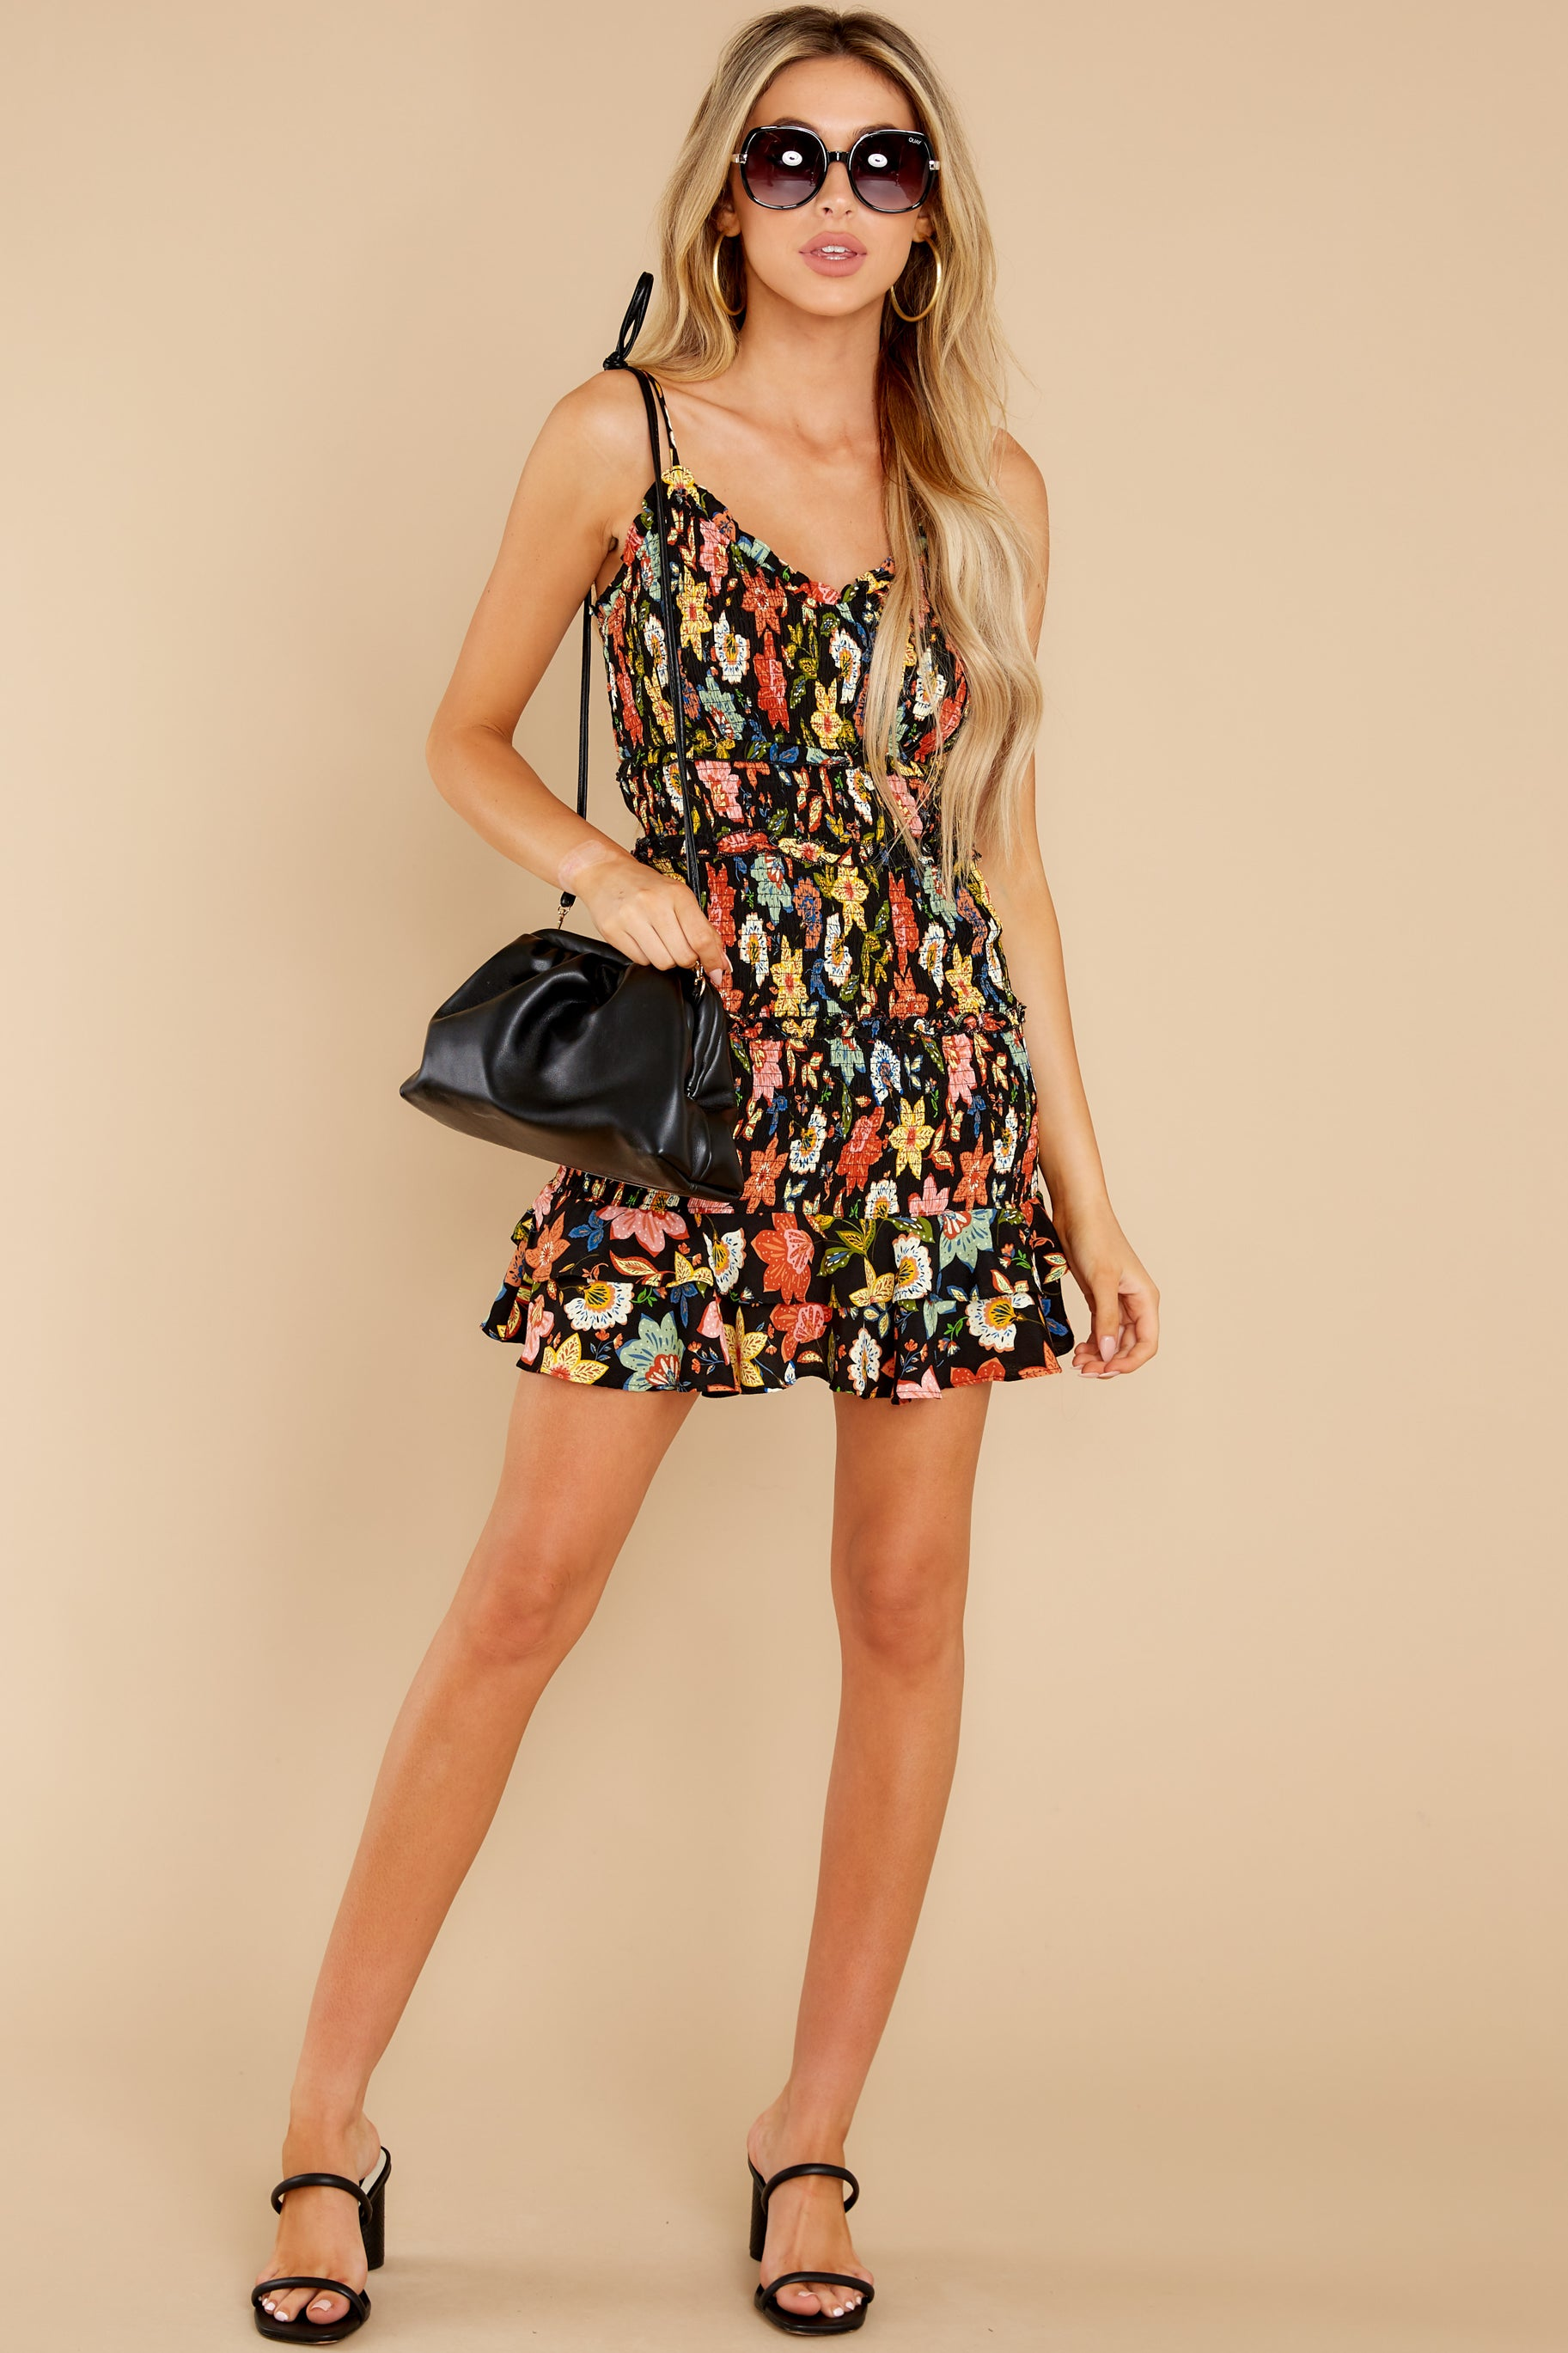 4 I'm Used To It Black Floral Print Dress at reddress.com